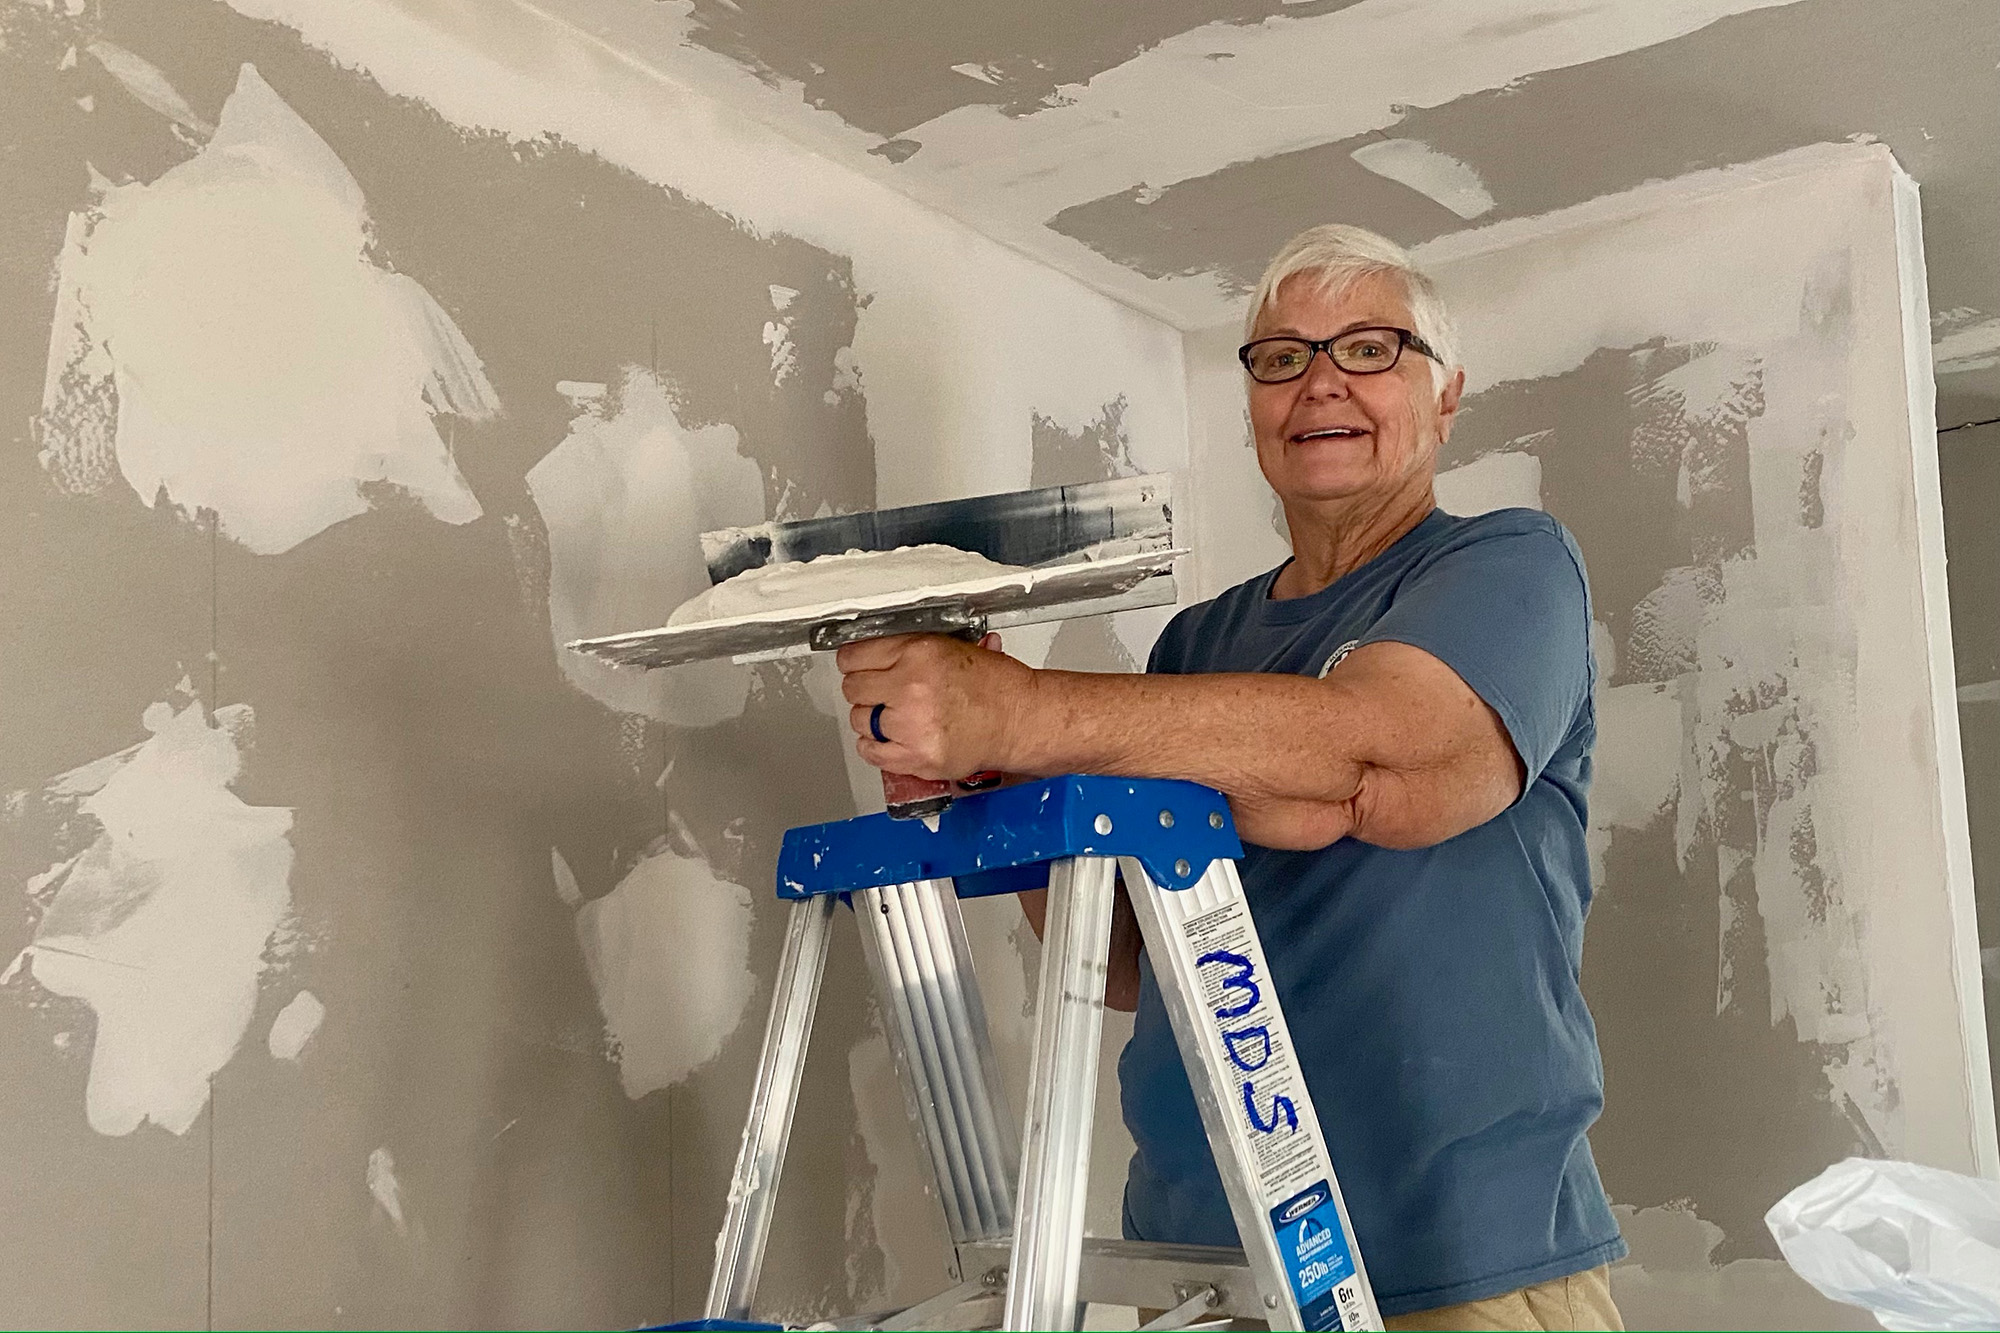 Rita Wolf, of Monticello, Iowa, loves spending winters with her husband Ken on volunteer mission trips to repair and rebuild homes after disasters